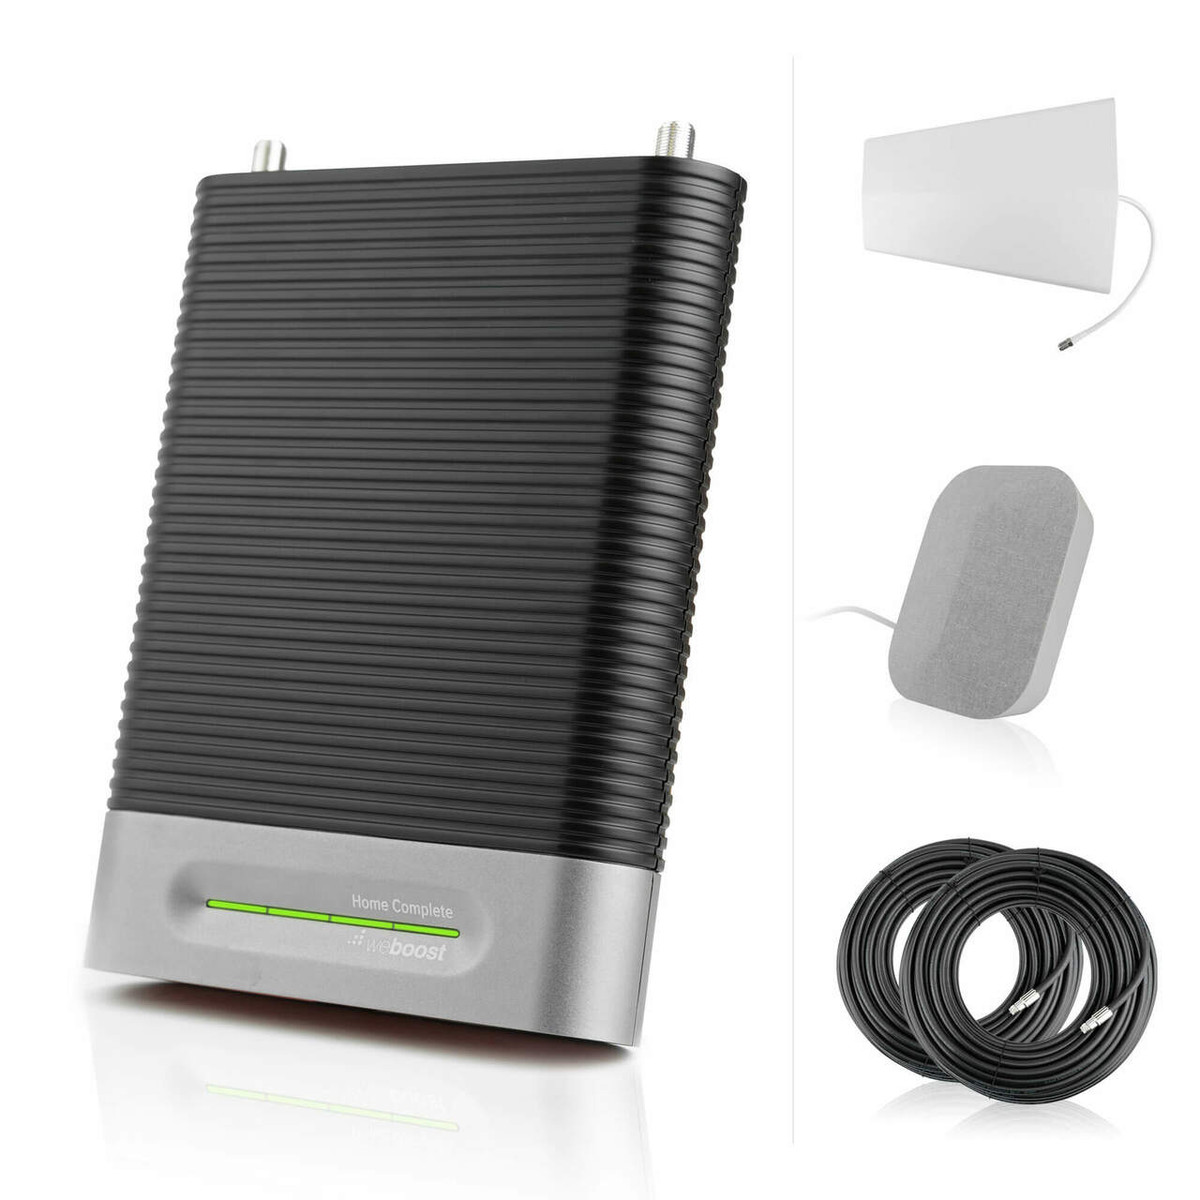 weBoost Home Complete Cell Signal Booster Kit, Refurbished - 650145R